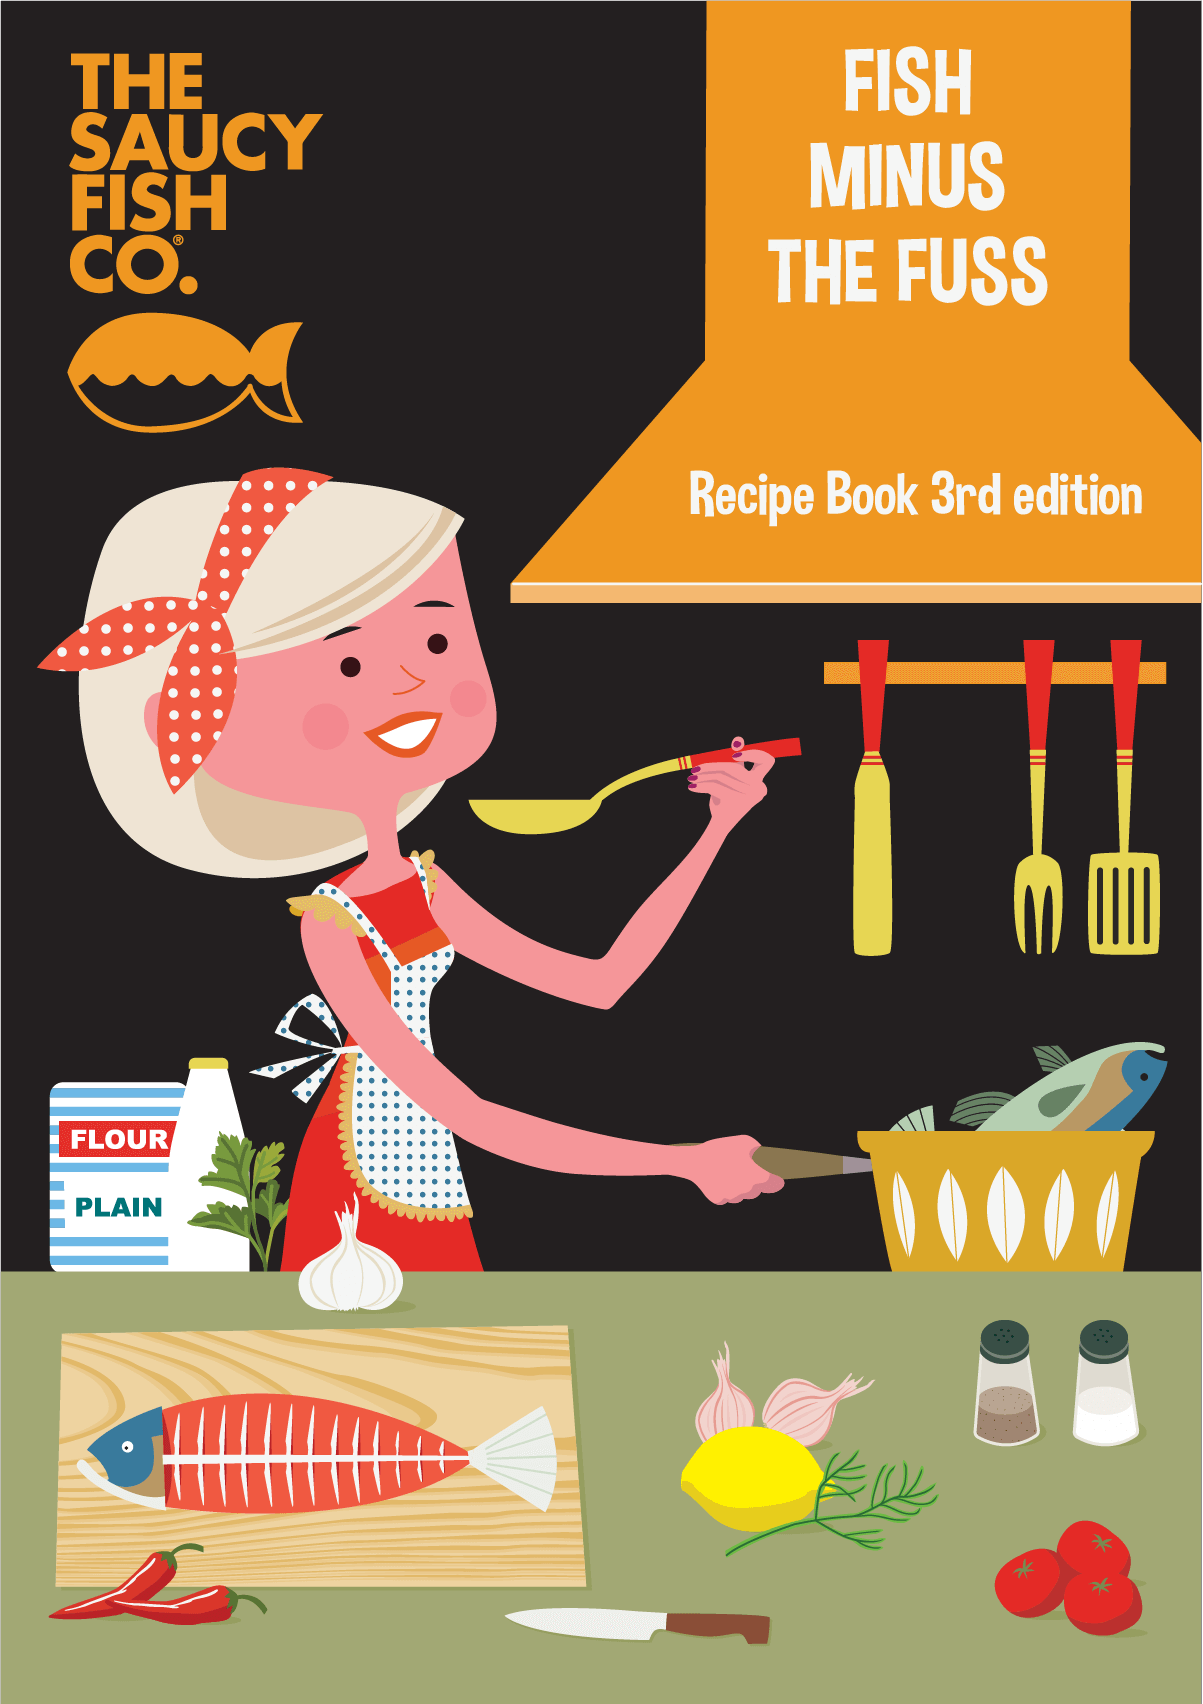 Saucy Fish Recipe Book Campaign